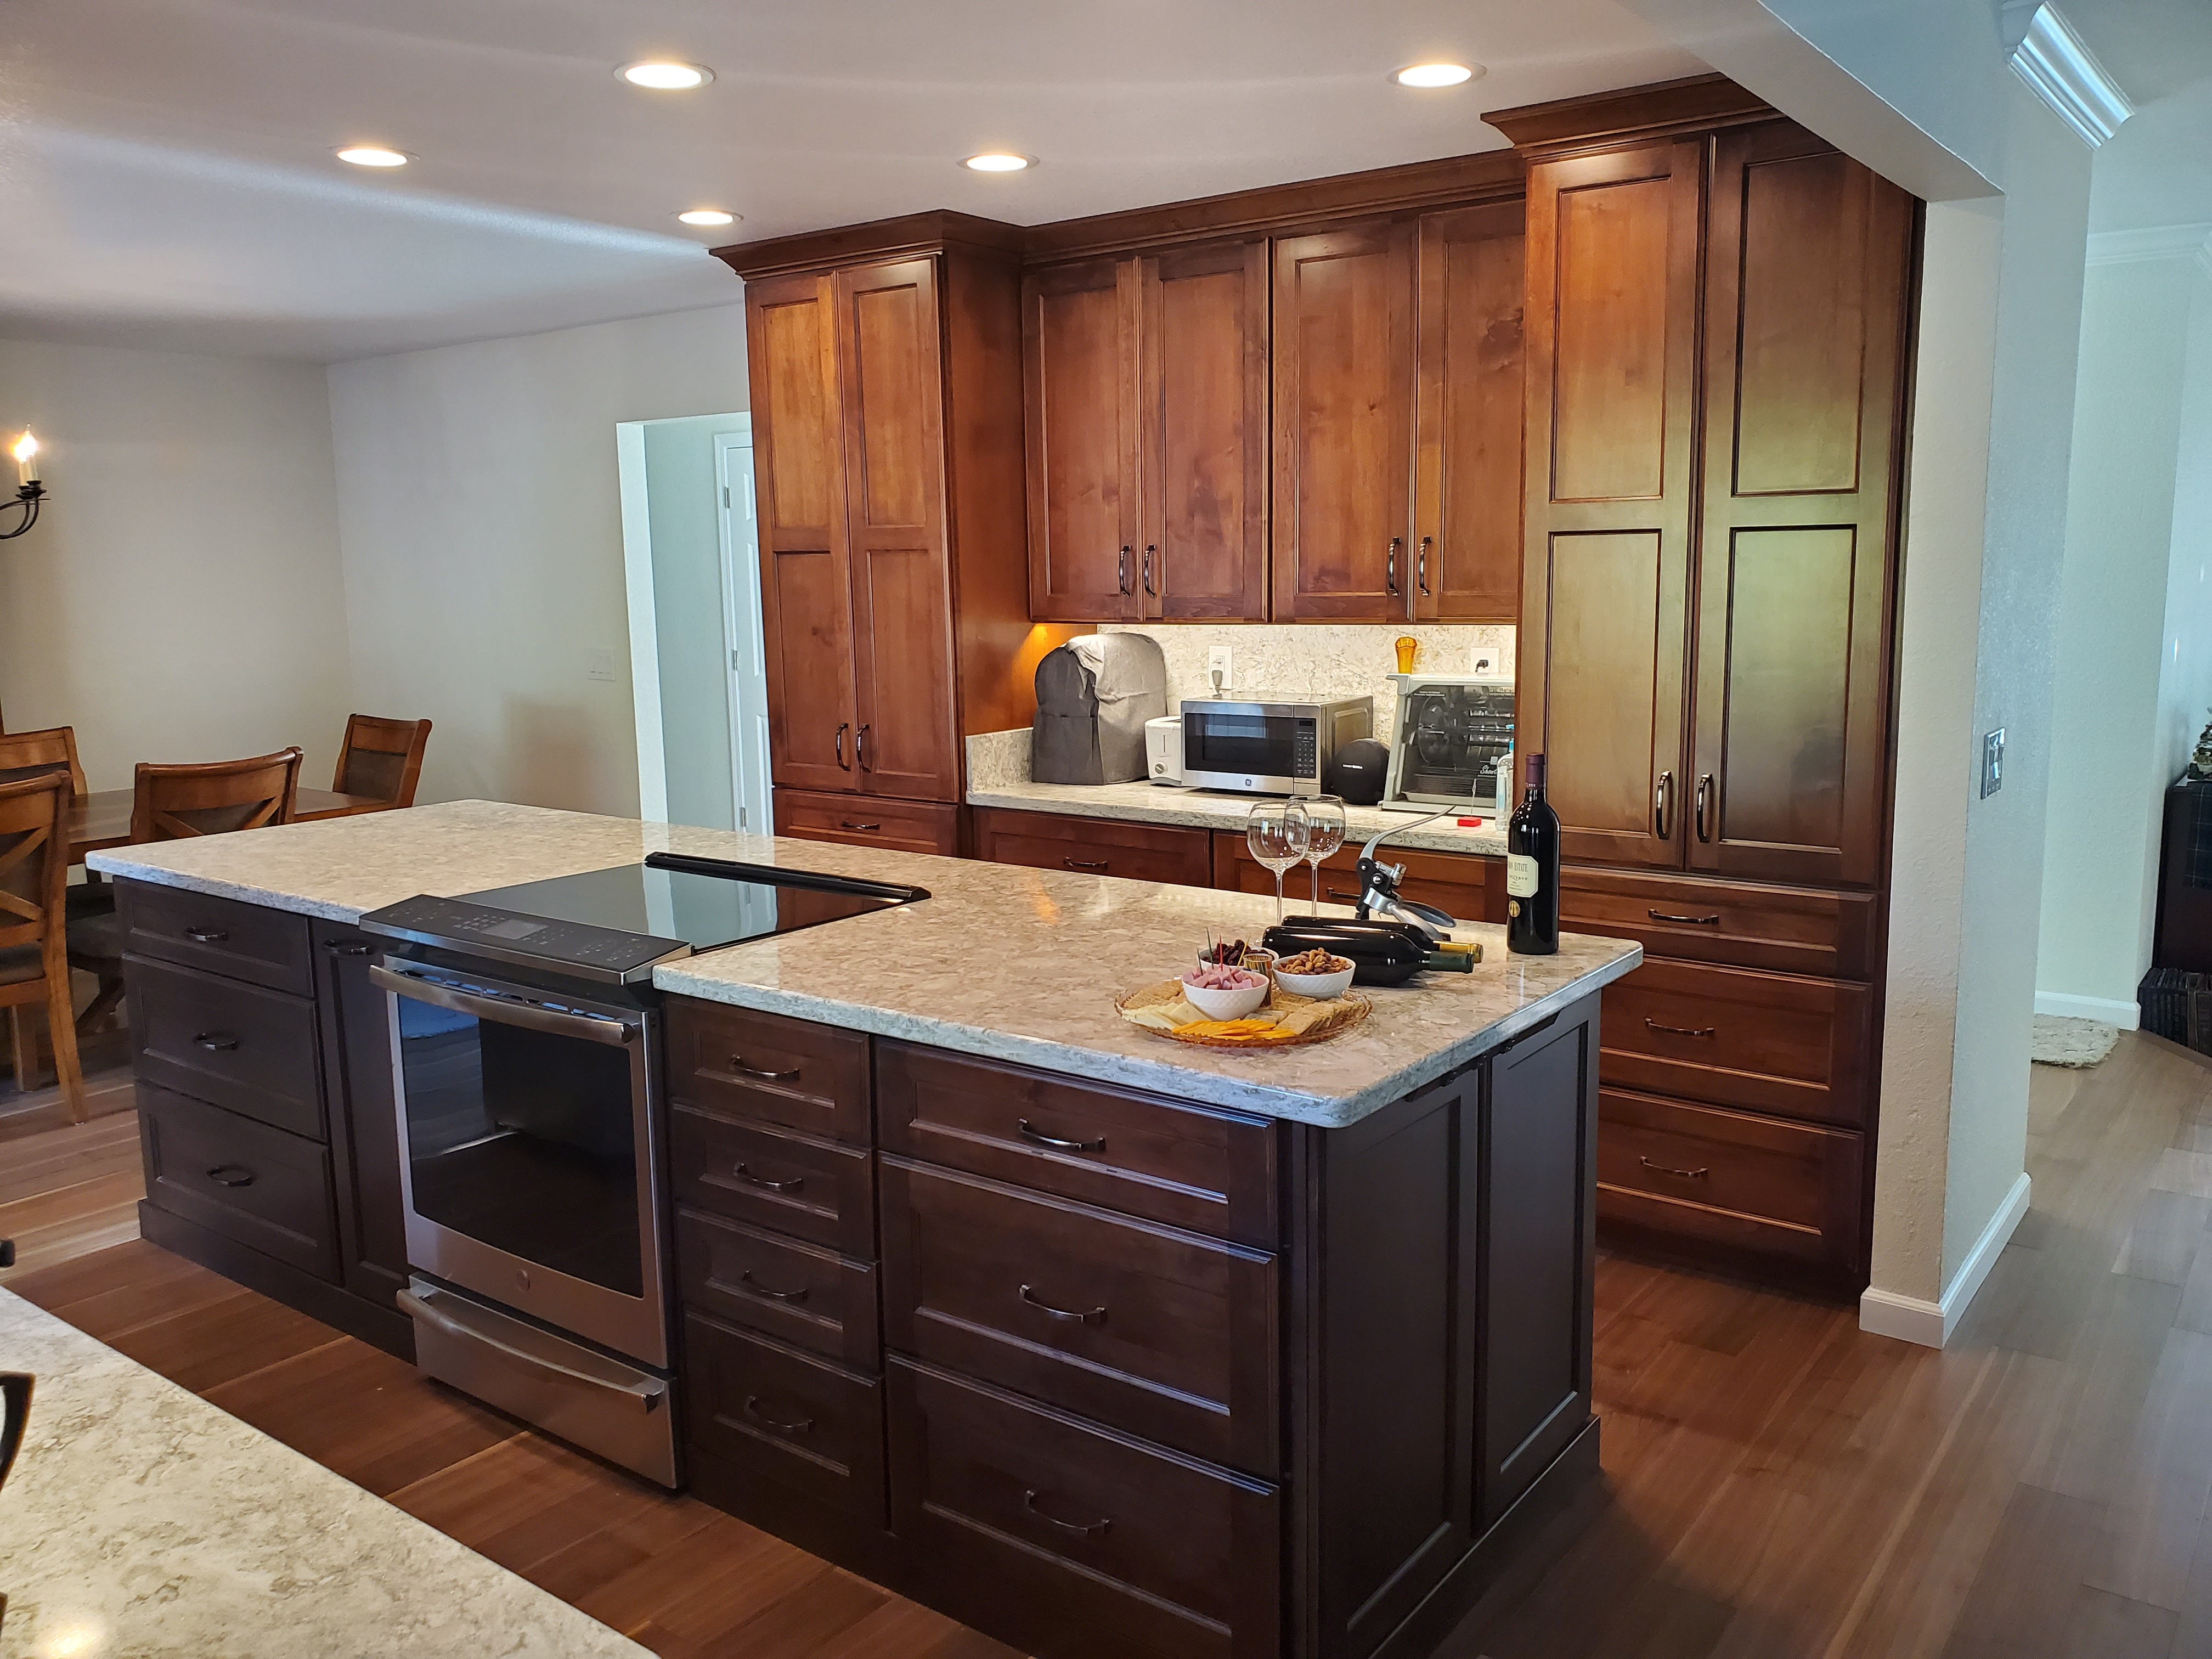 Kitchen island with oven, white counters, cabinets.